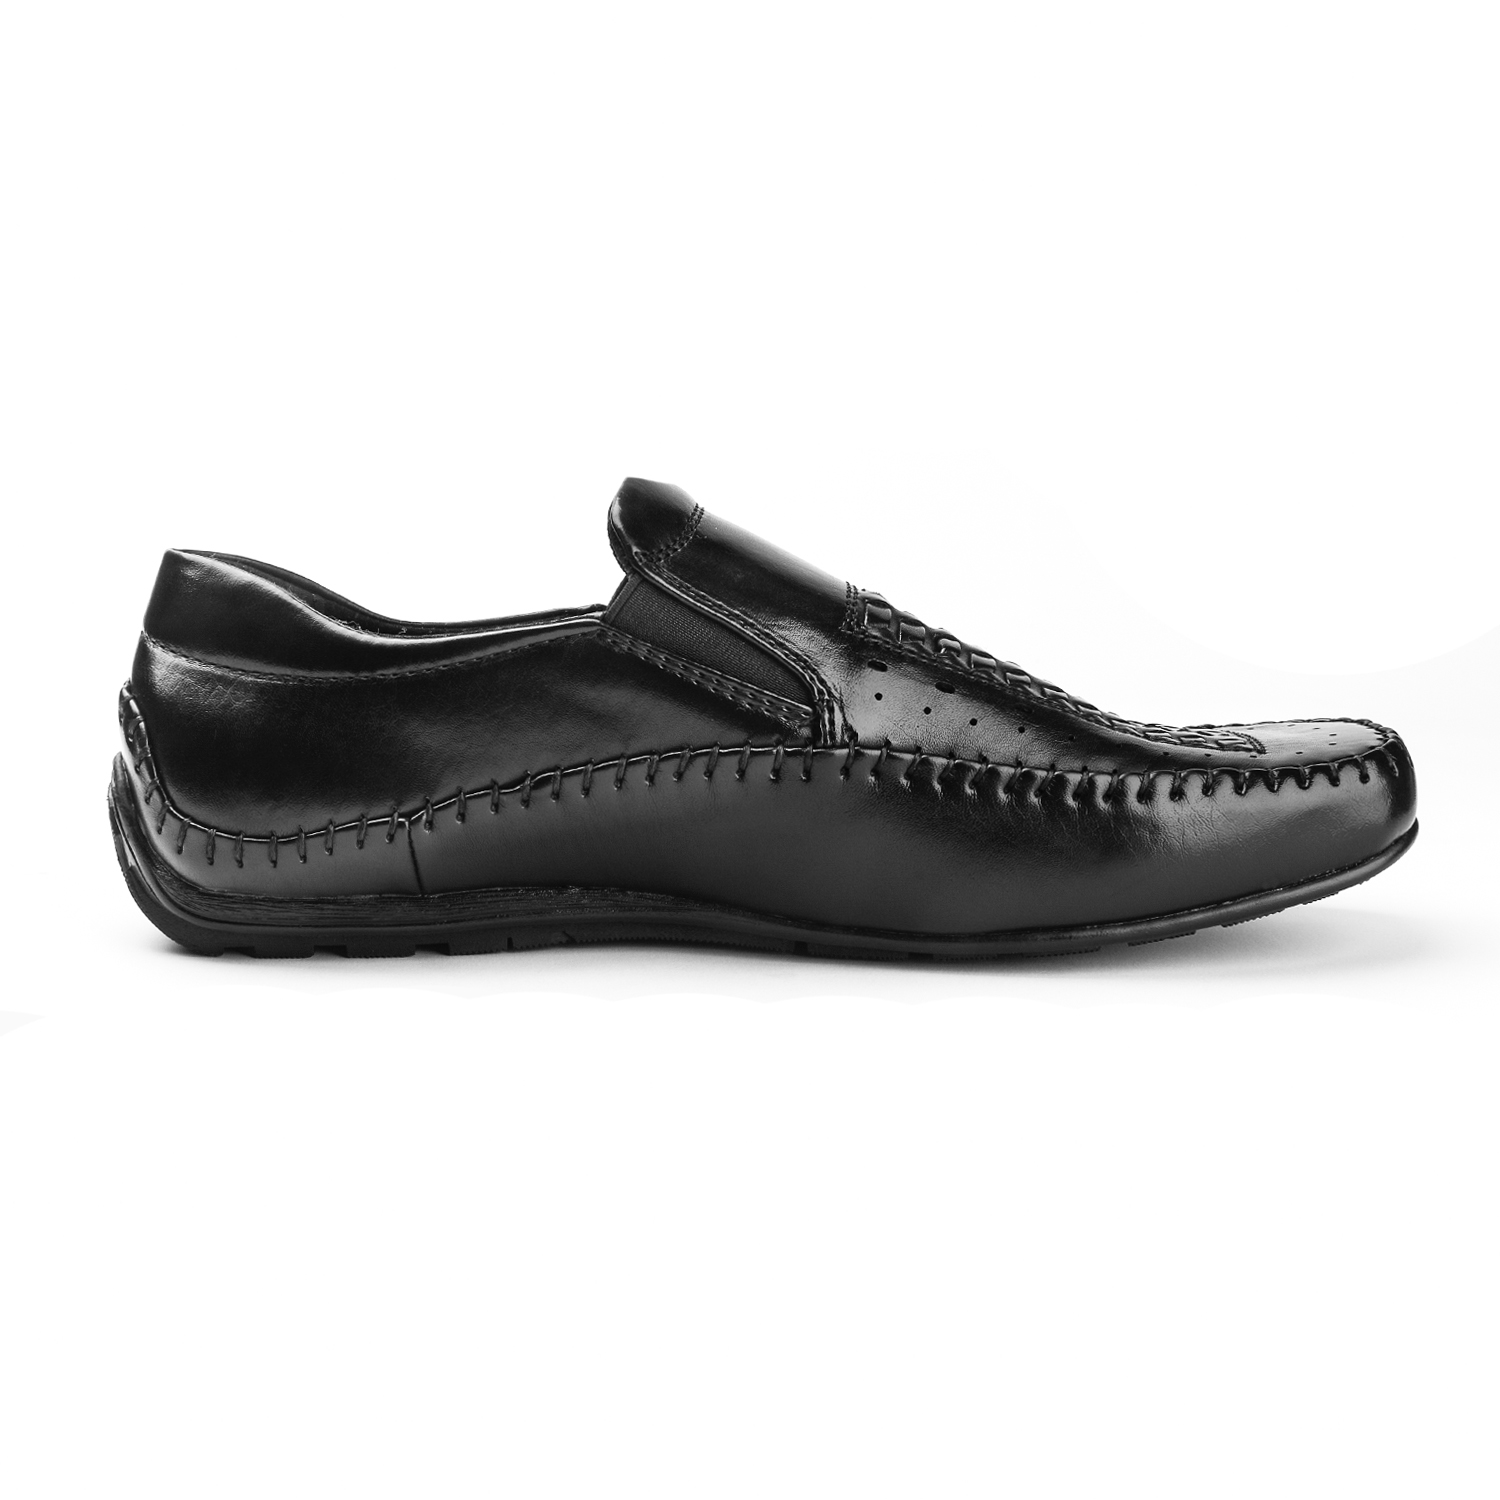 Bruno-Marc-Mens-Penny-Light-Loafers-Moccasins-Driving-Flats-Slip-On-Casual-Shoes thumbnail 7